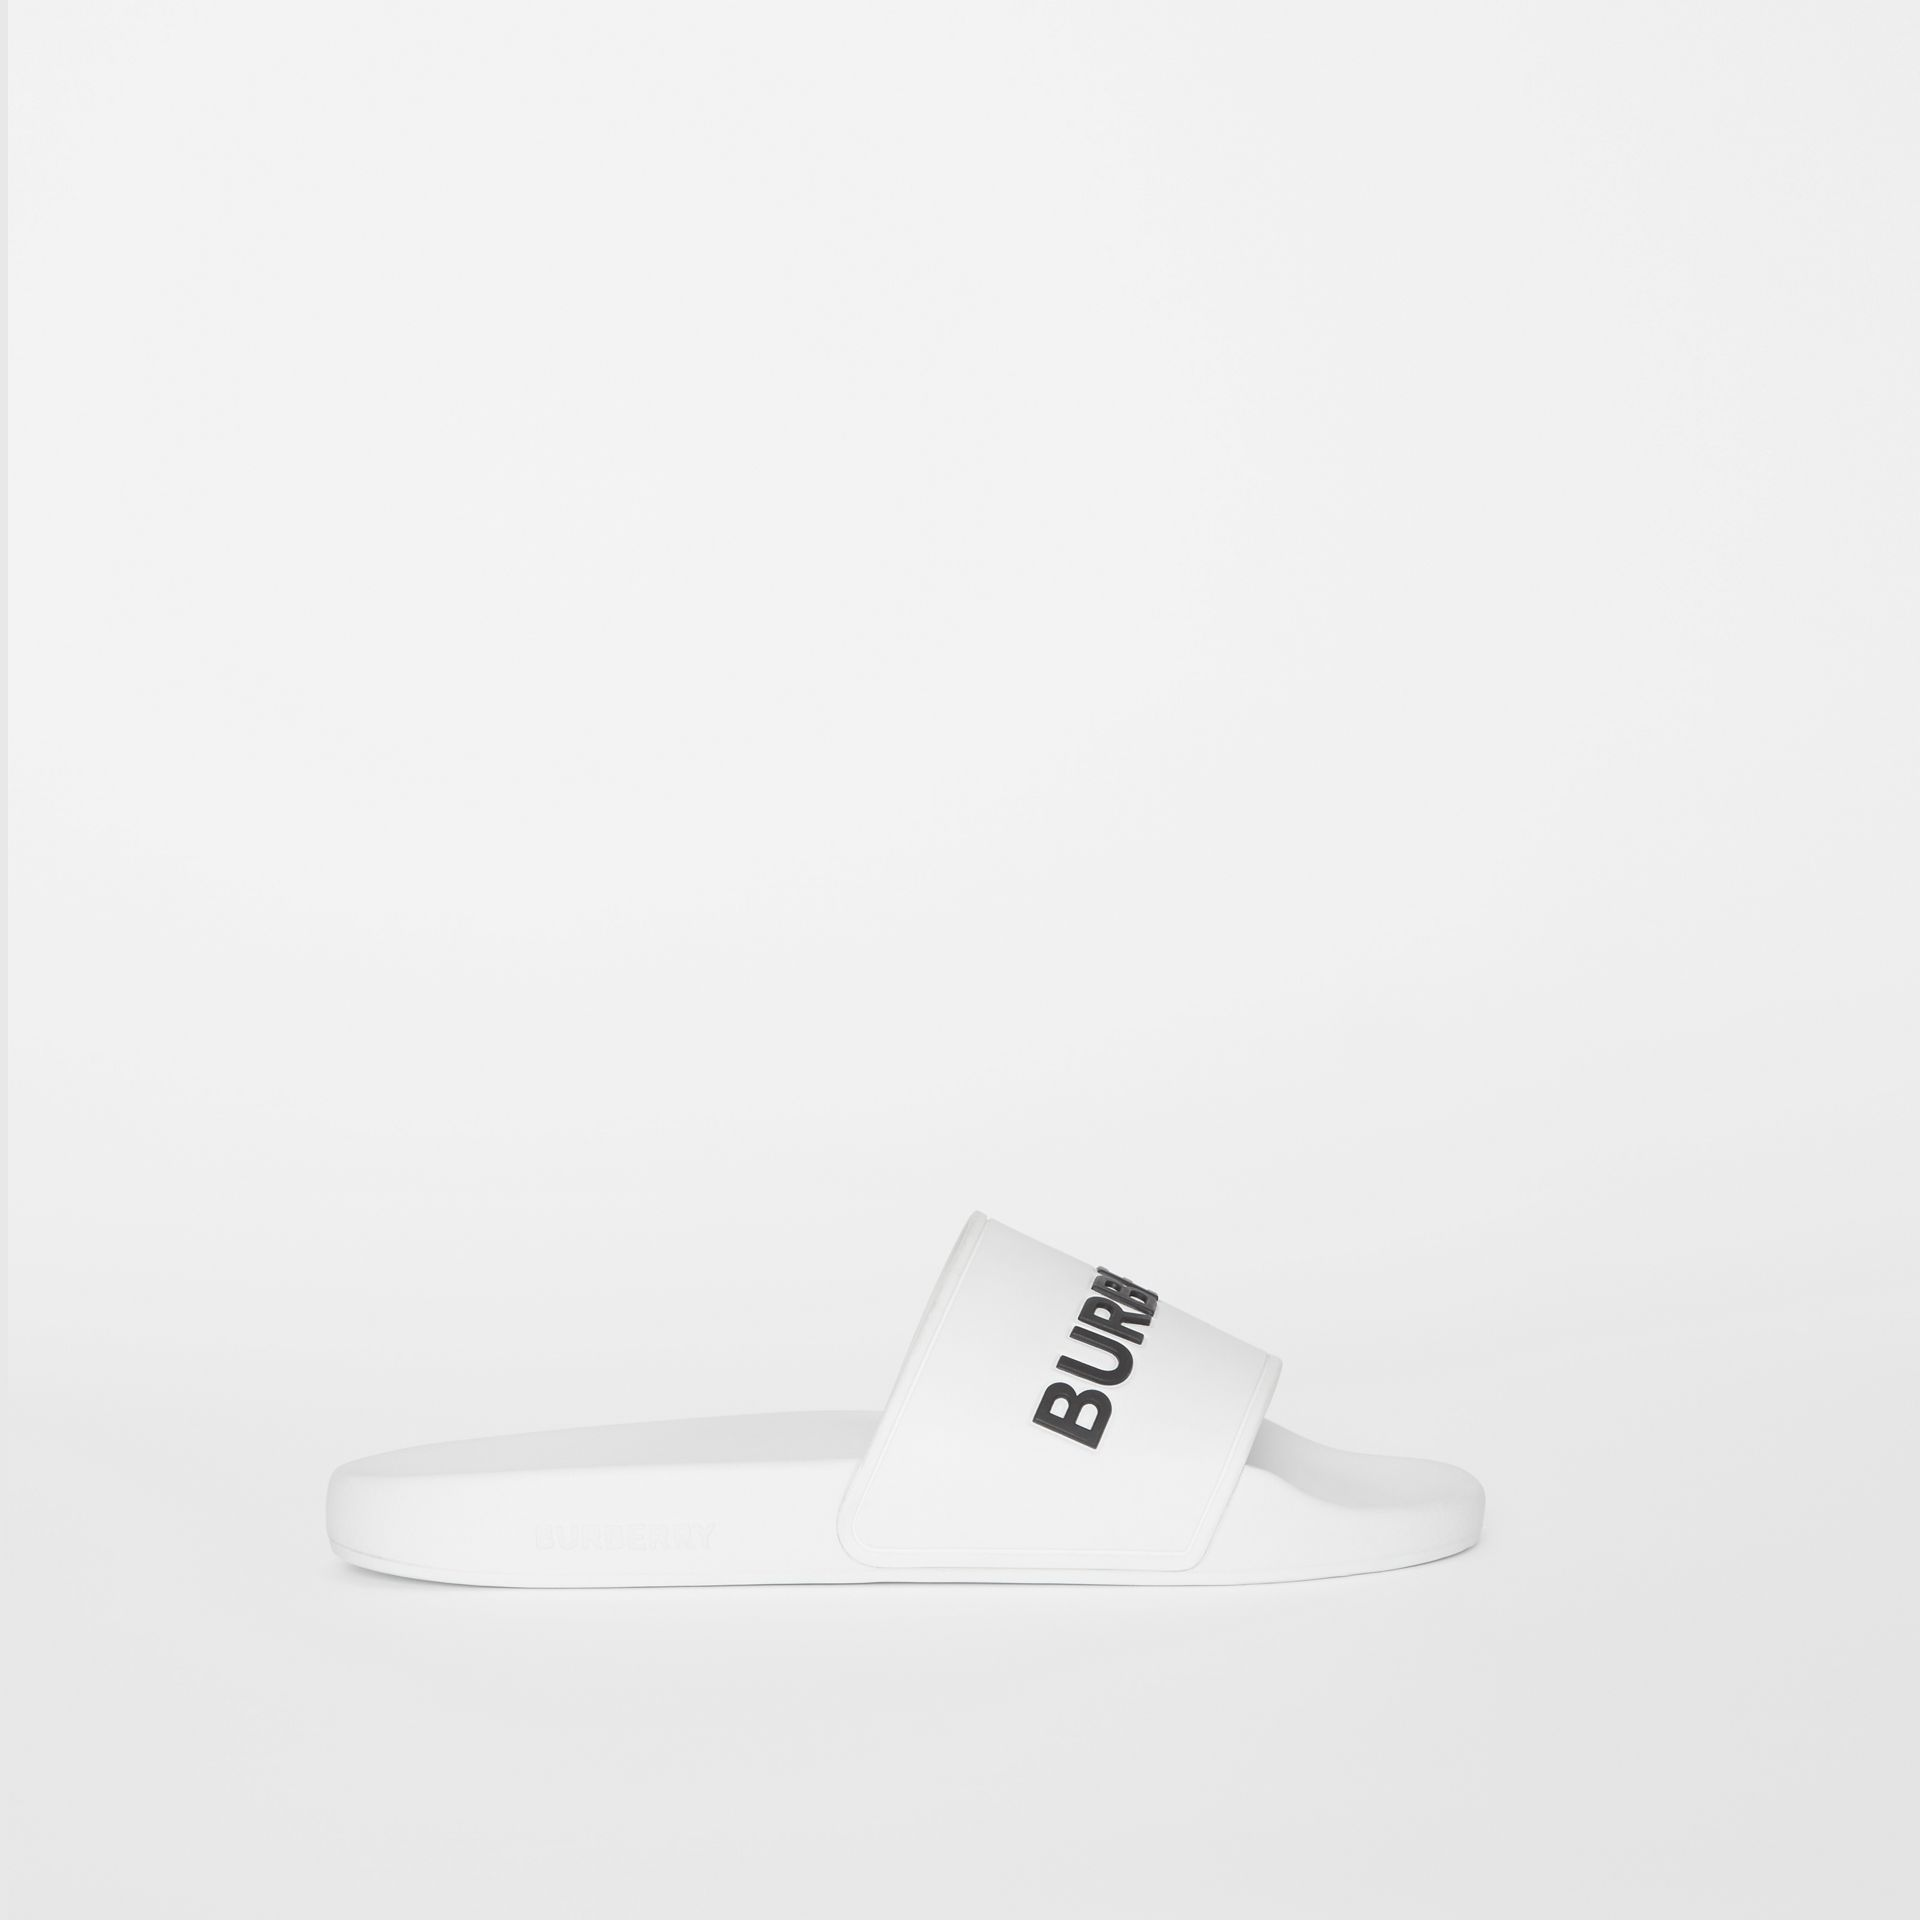 Kingdom Motif Slides in Optic White/black - Men | Burberry Canada - gallery image 4